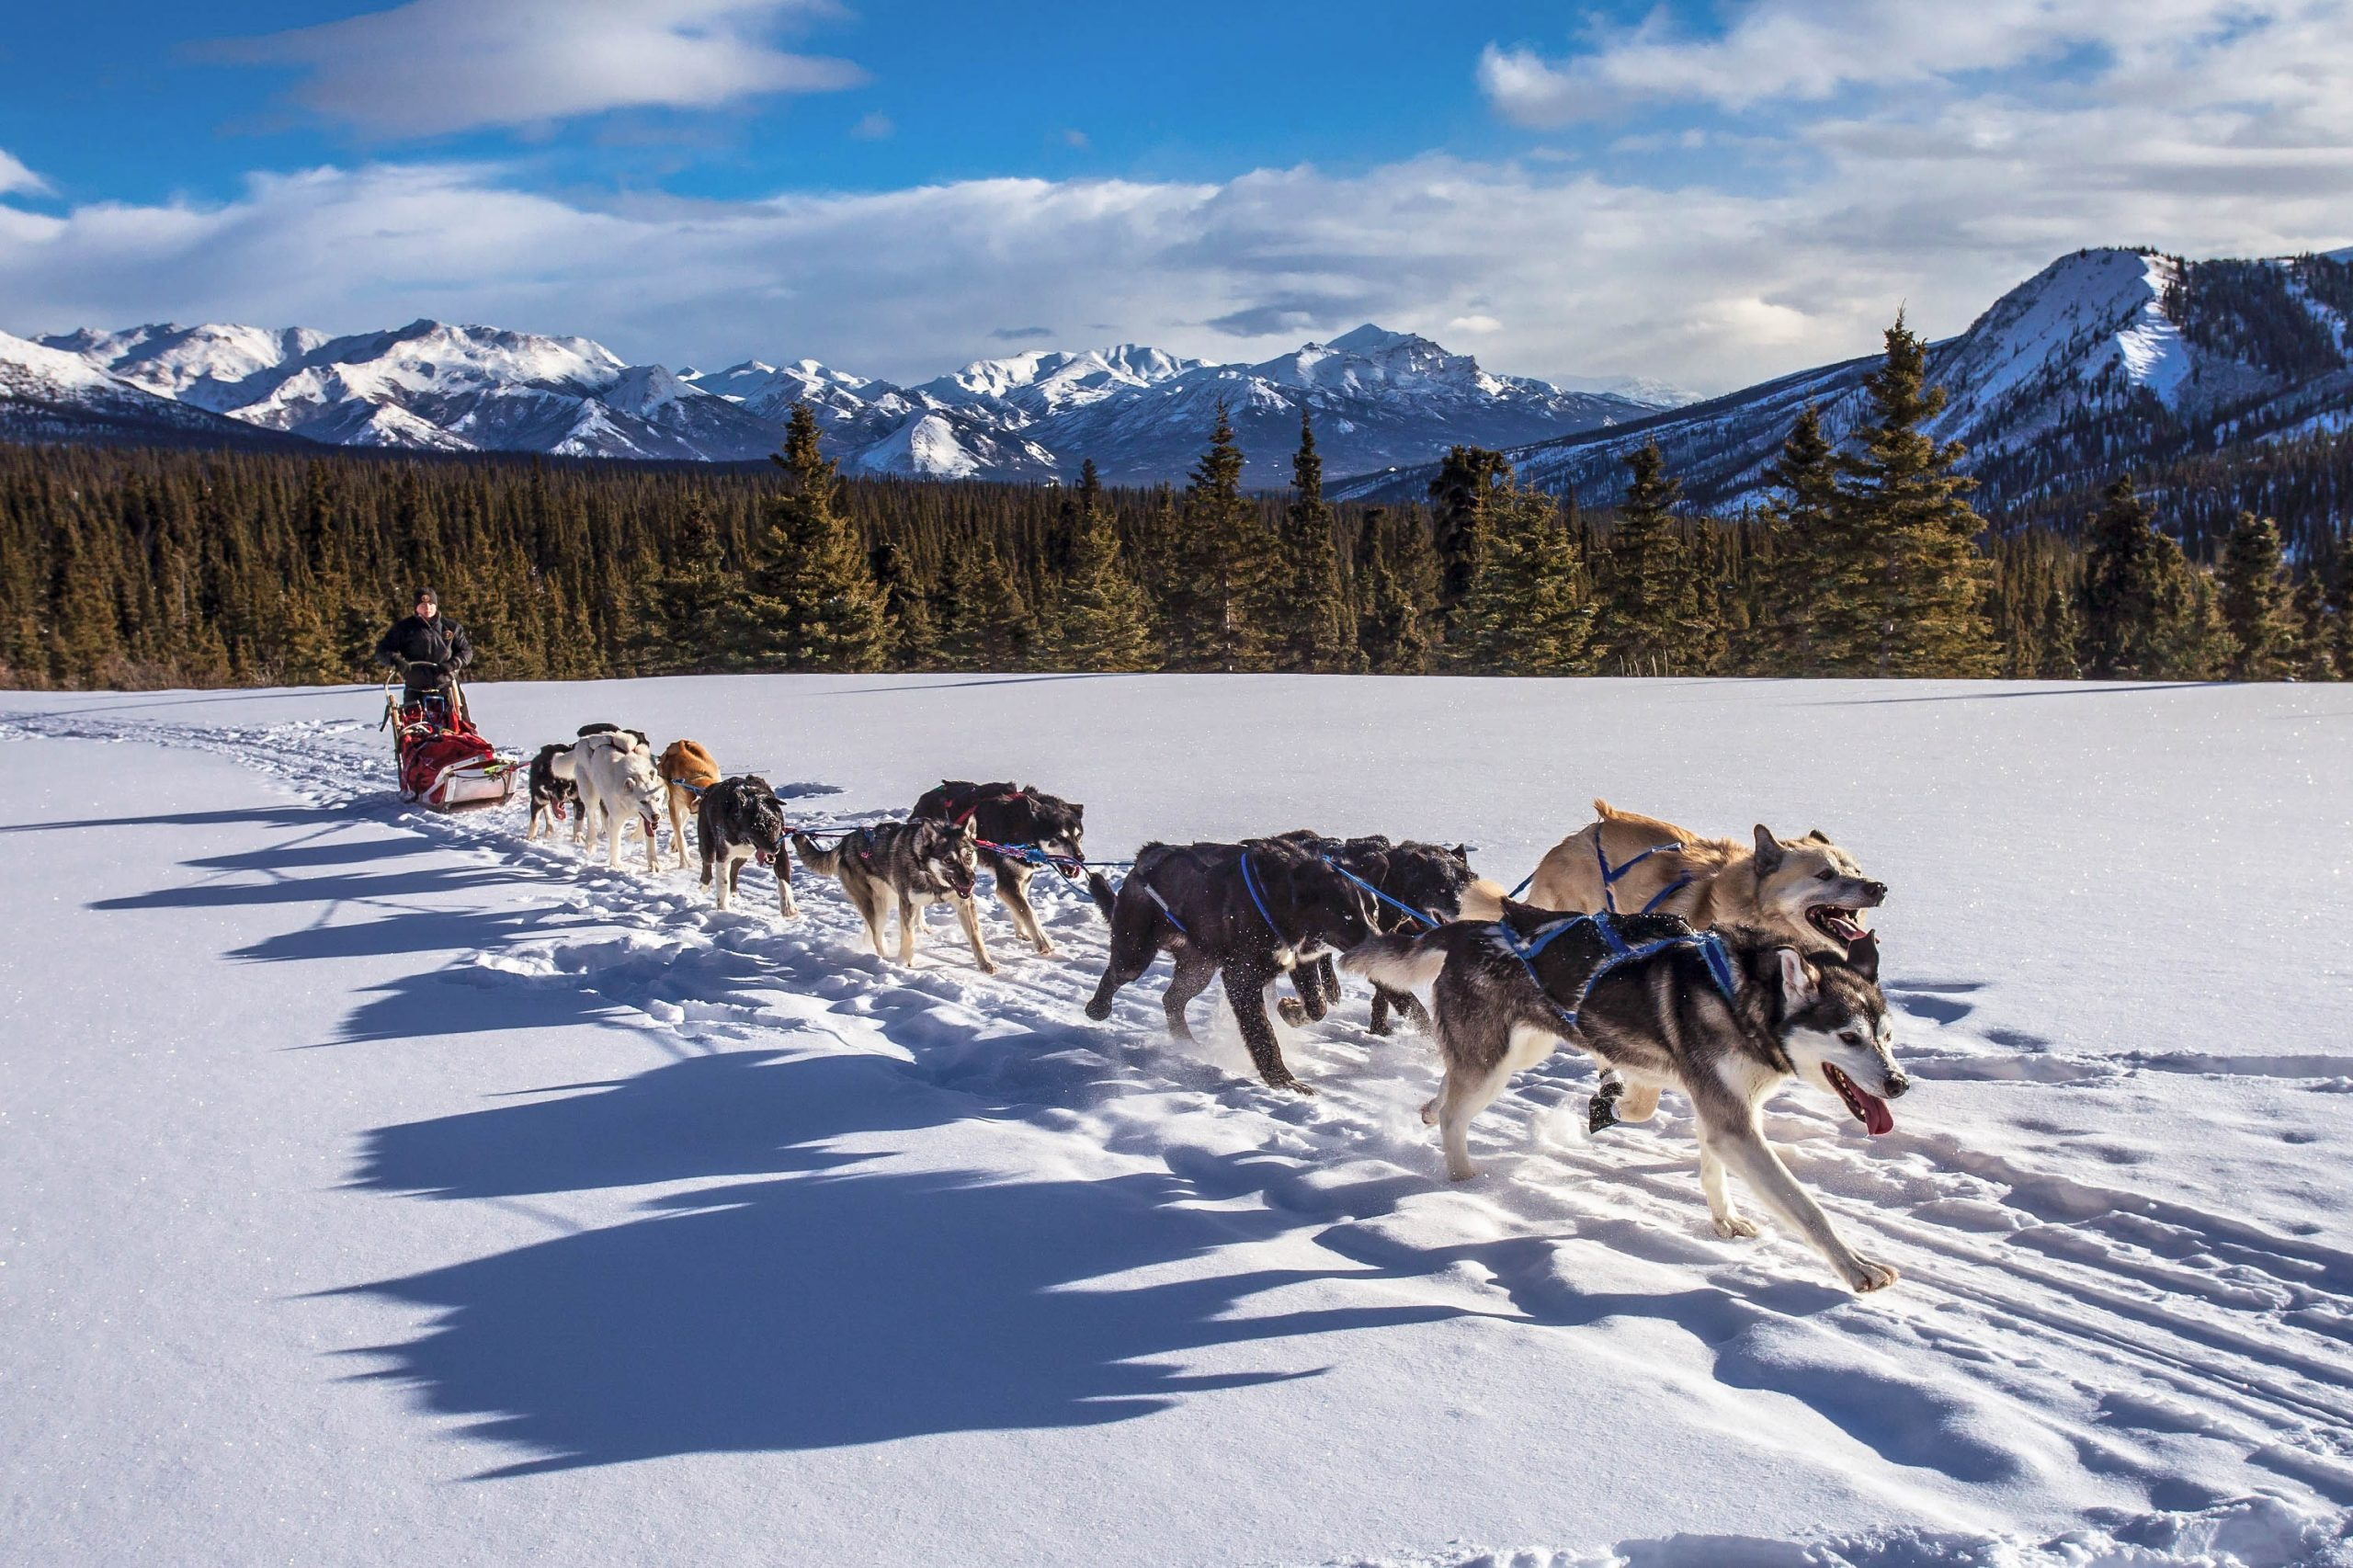 "A team of dogs hauling a dogsled across a snowy landscape, such as a scene that can be imagined from the novel ""The Call of the Wild"" by Jack London"